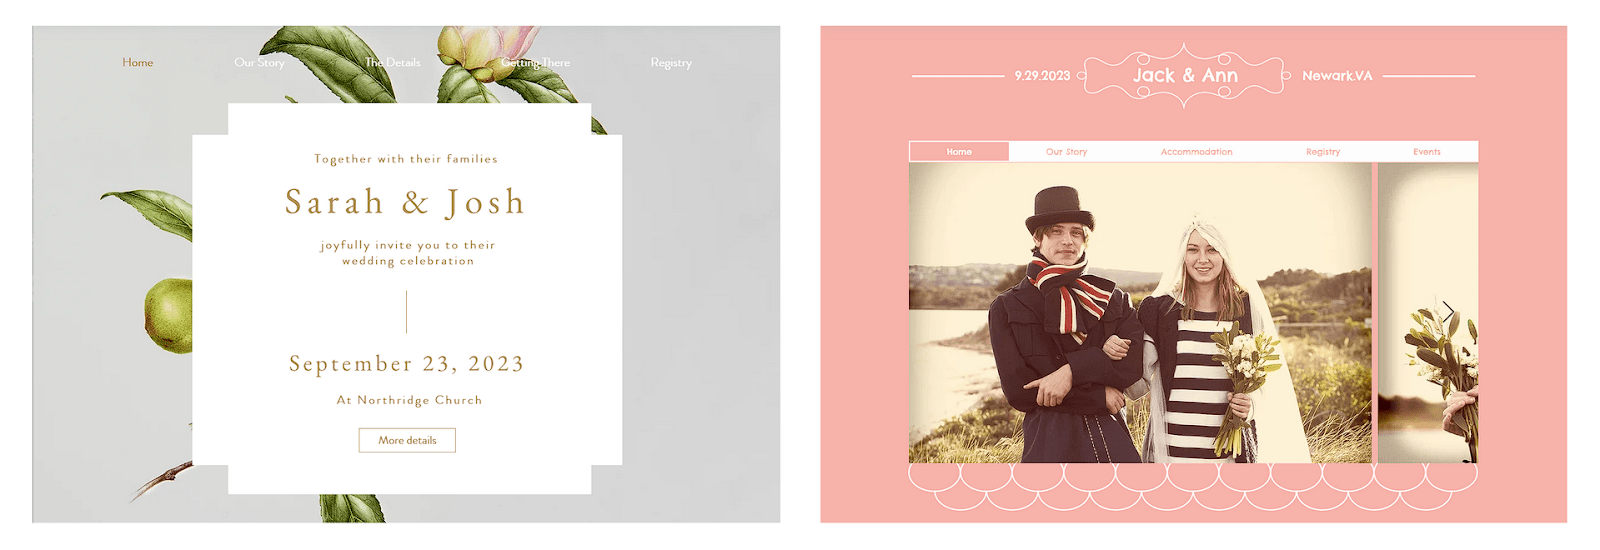 Wix wedding templates I don't like